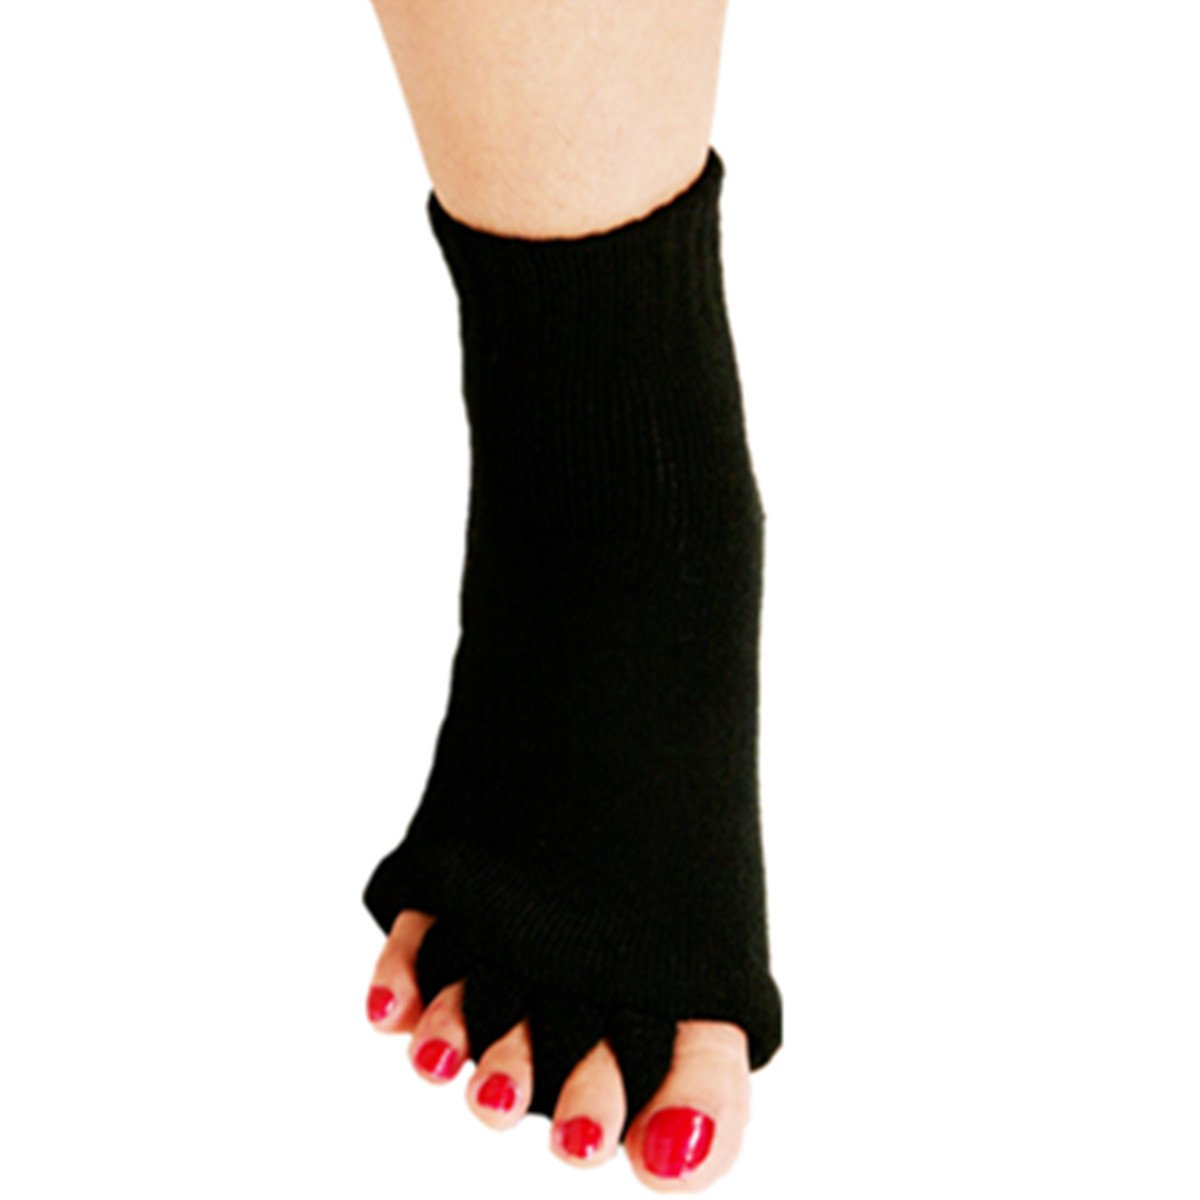 1 Pair Yoga GYM Massage Five Toe Separator Socks Foot Alignment Pain Relief Hot (One Size, A-Black)